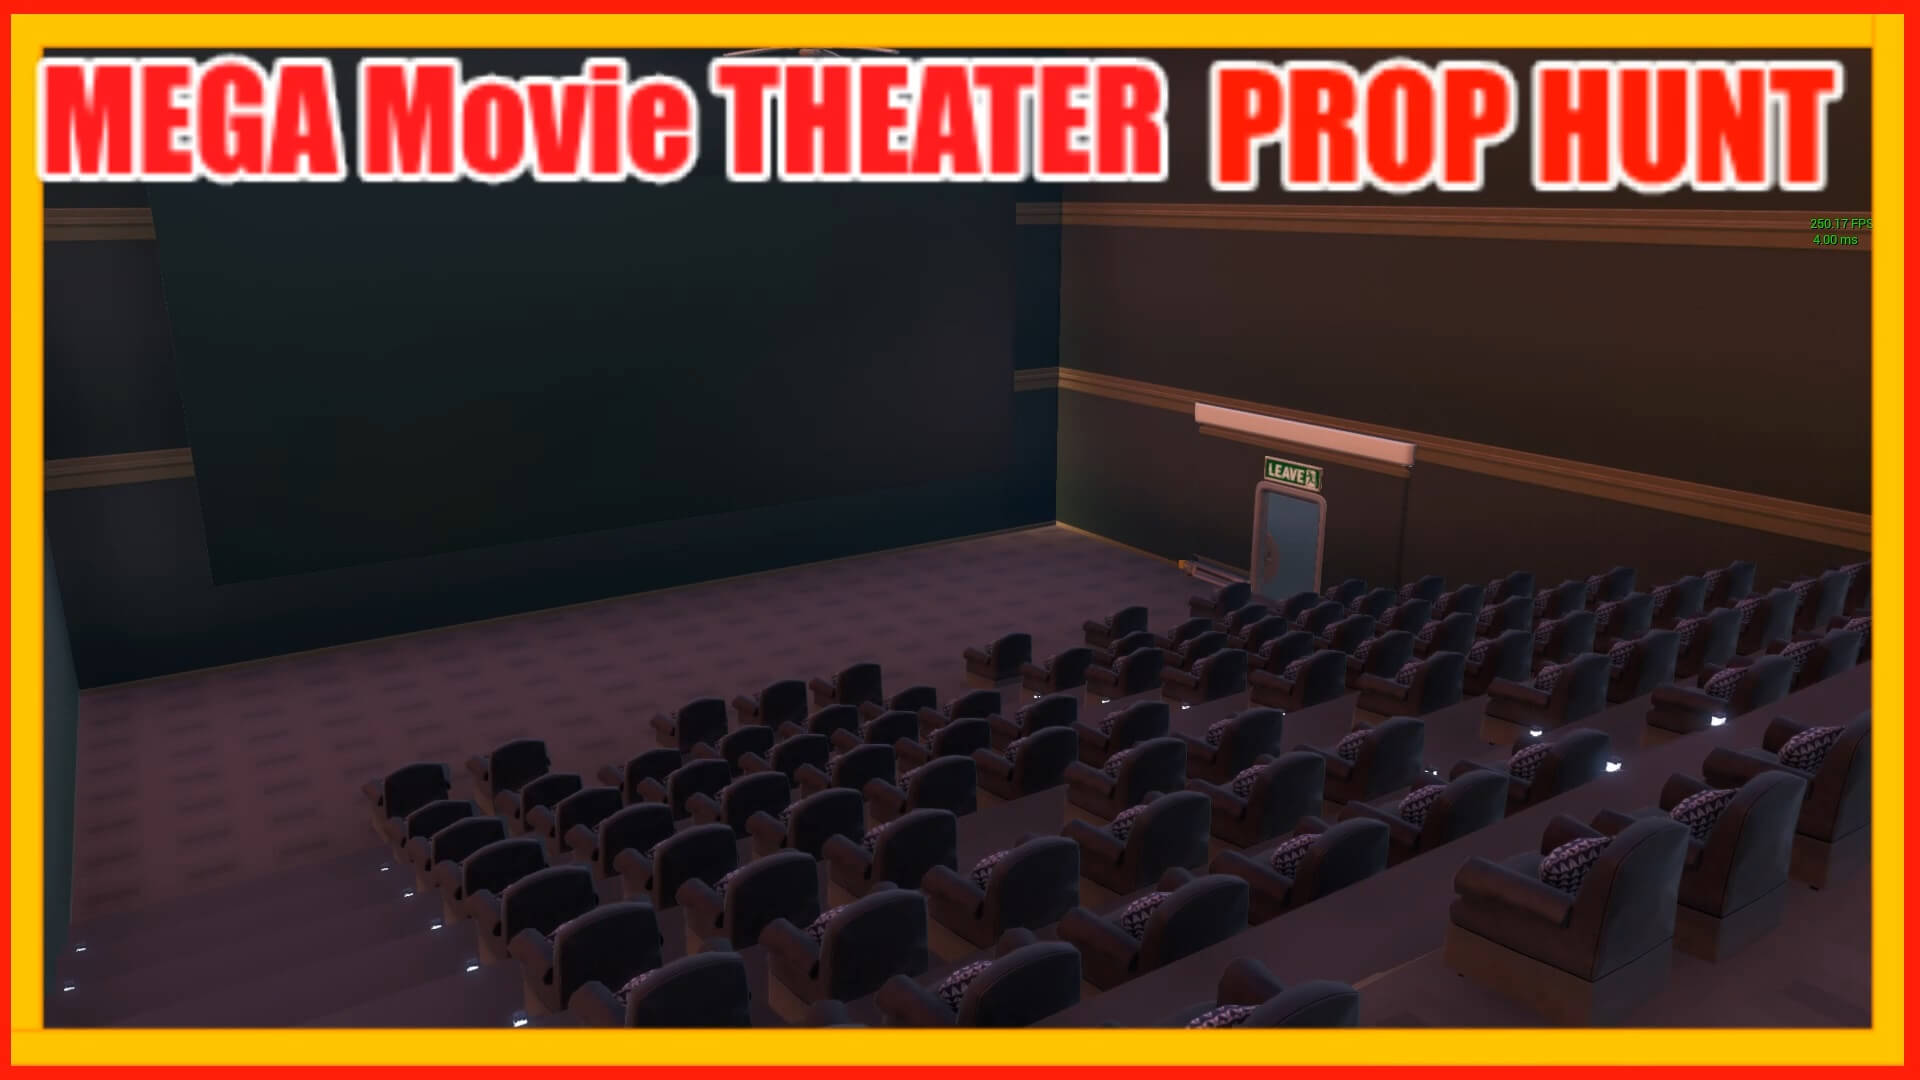 MEGA MOVIE THEATER PROP HUNT